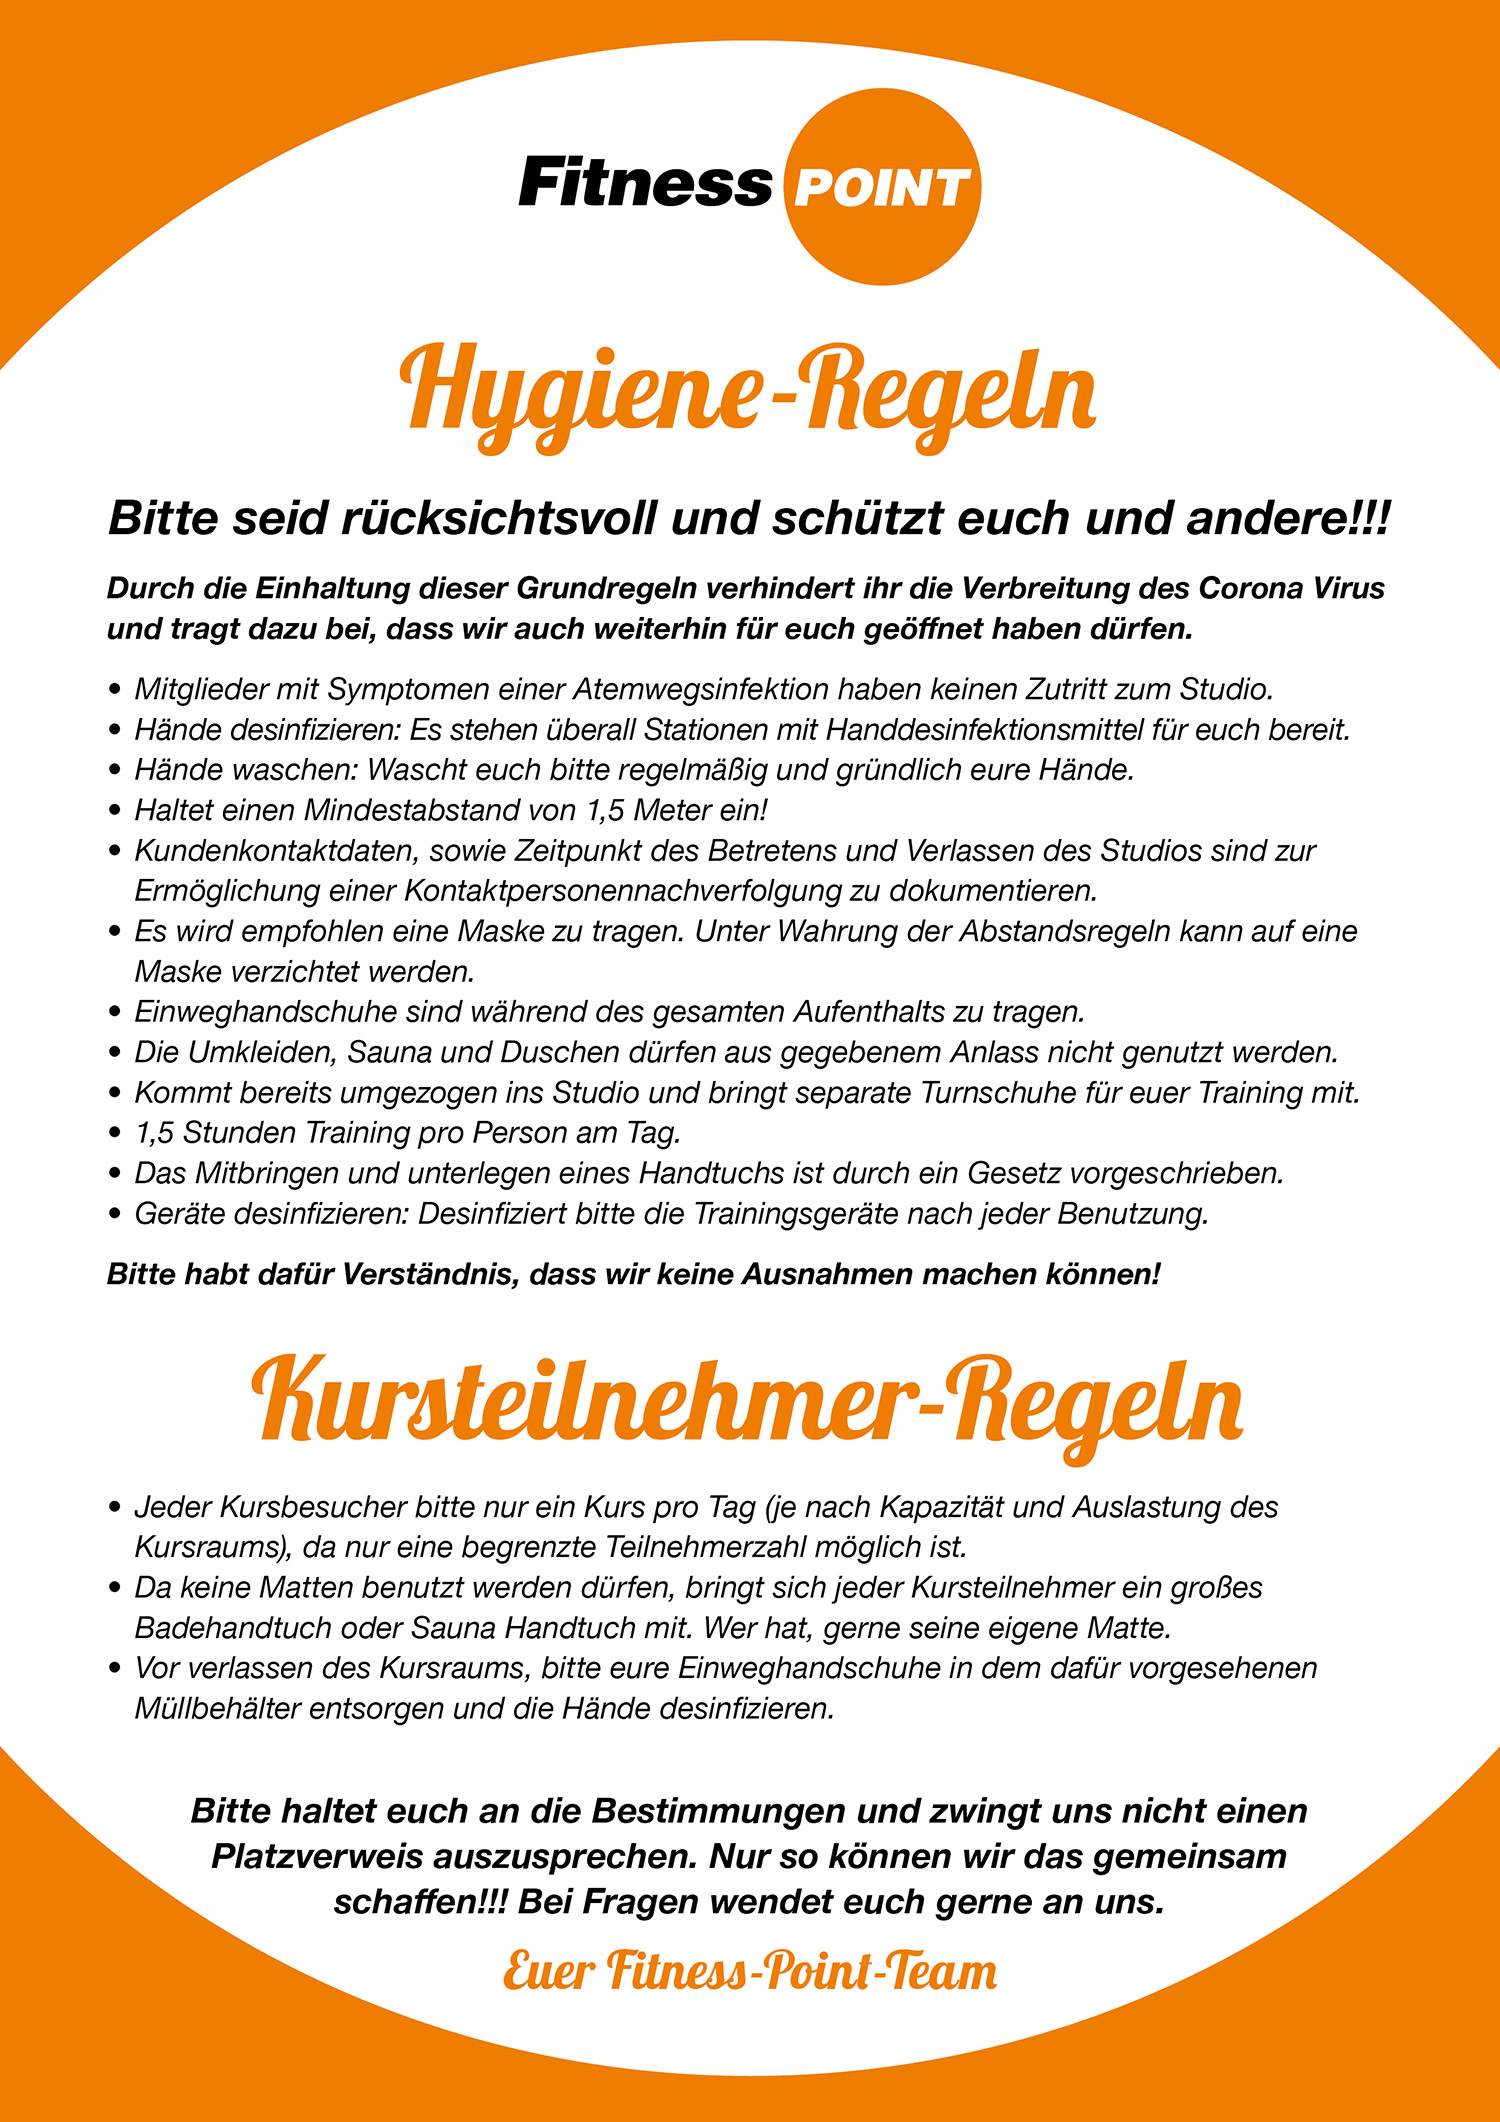 Hygiene Regeln Fitness Point Horrem